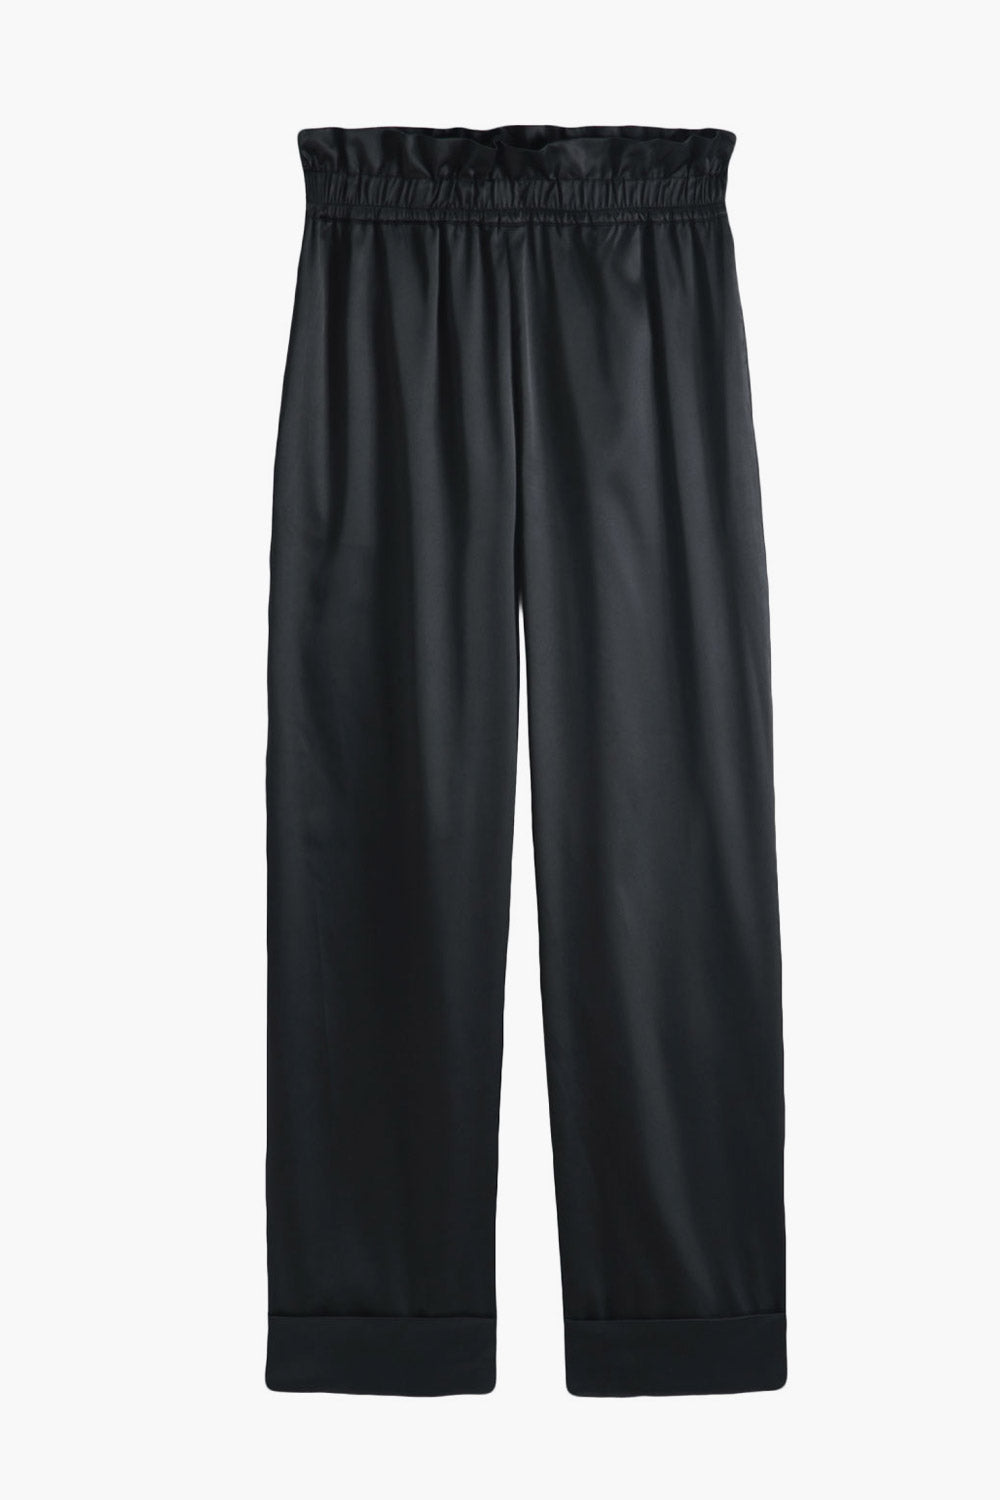 High-Rise Thin Silky Pants